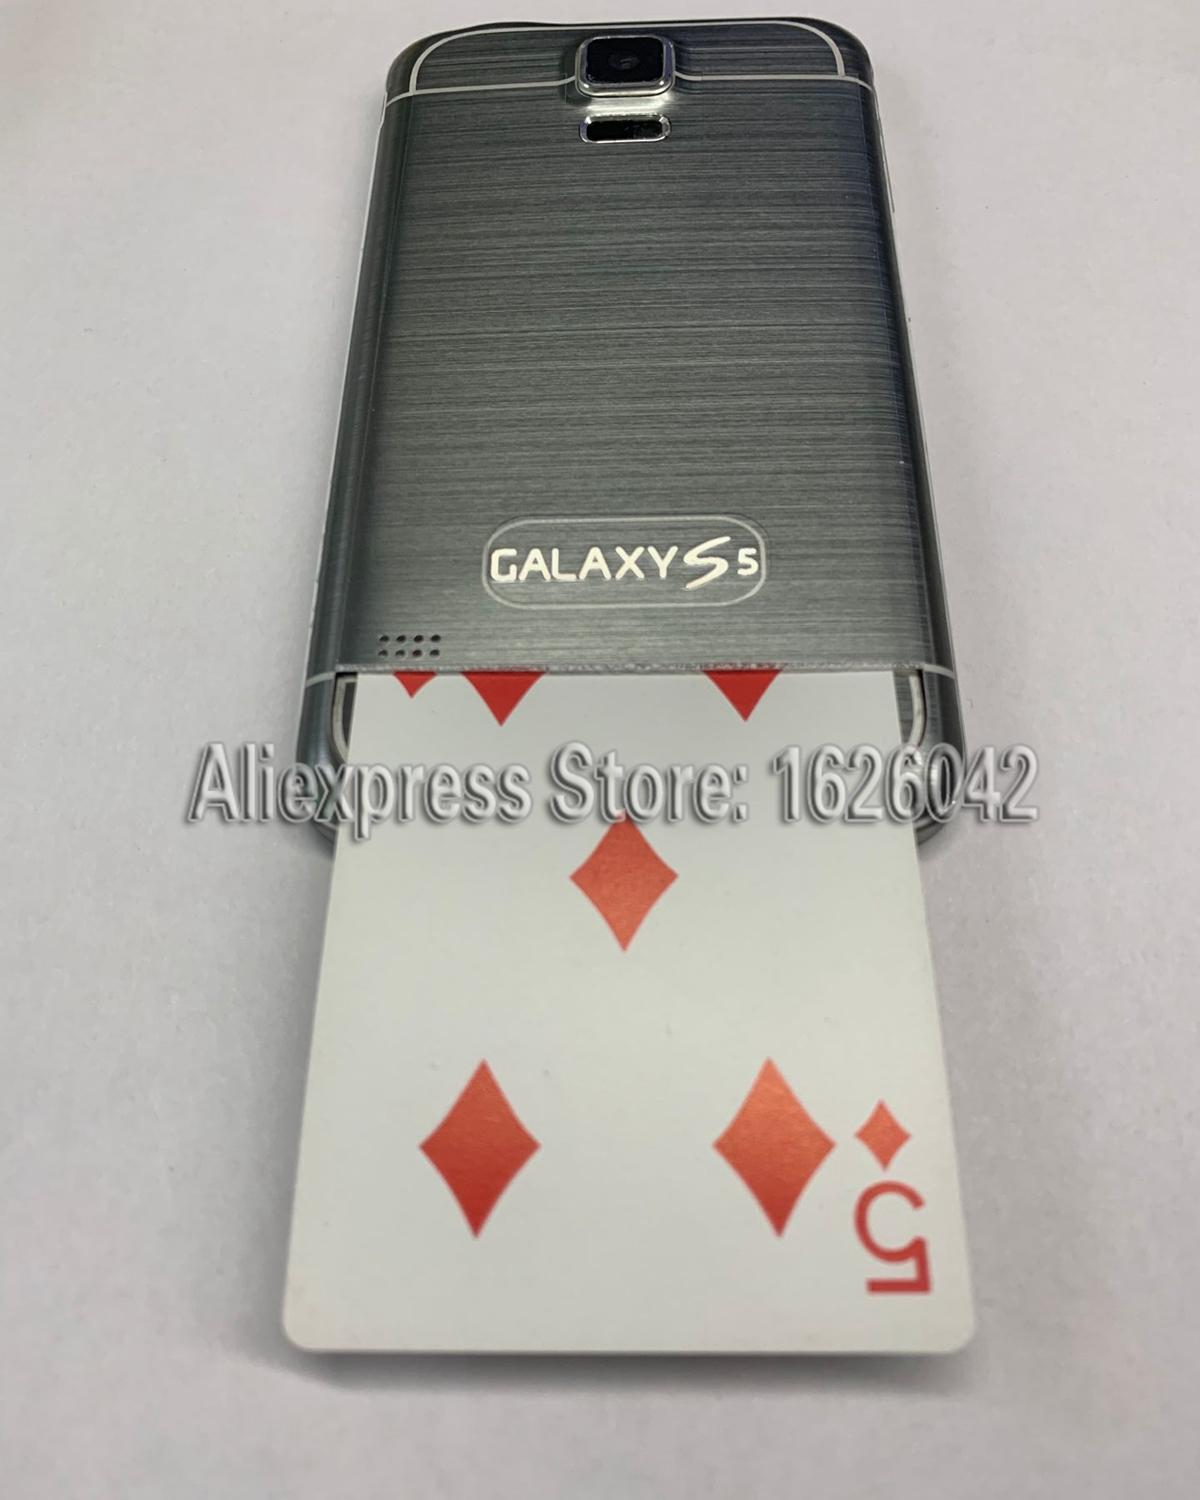 XF Black Plastic Samsong S5 Mobile Poker Cheat Device|Gambling <font><b>Cheating</b></font> Devices|Poker trick Gamble Magic <font><b>Cheating</b></font> Systems image